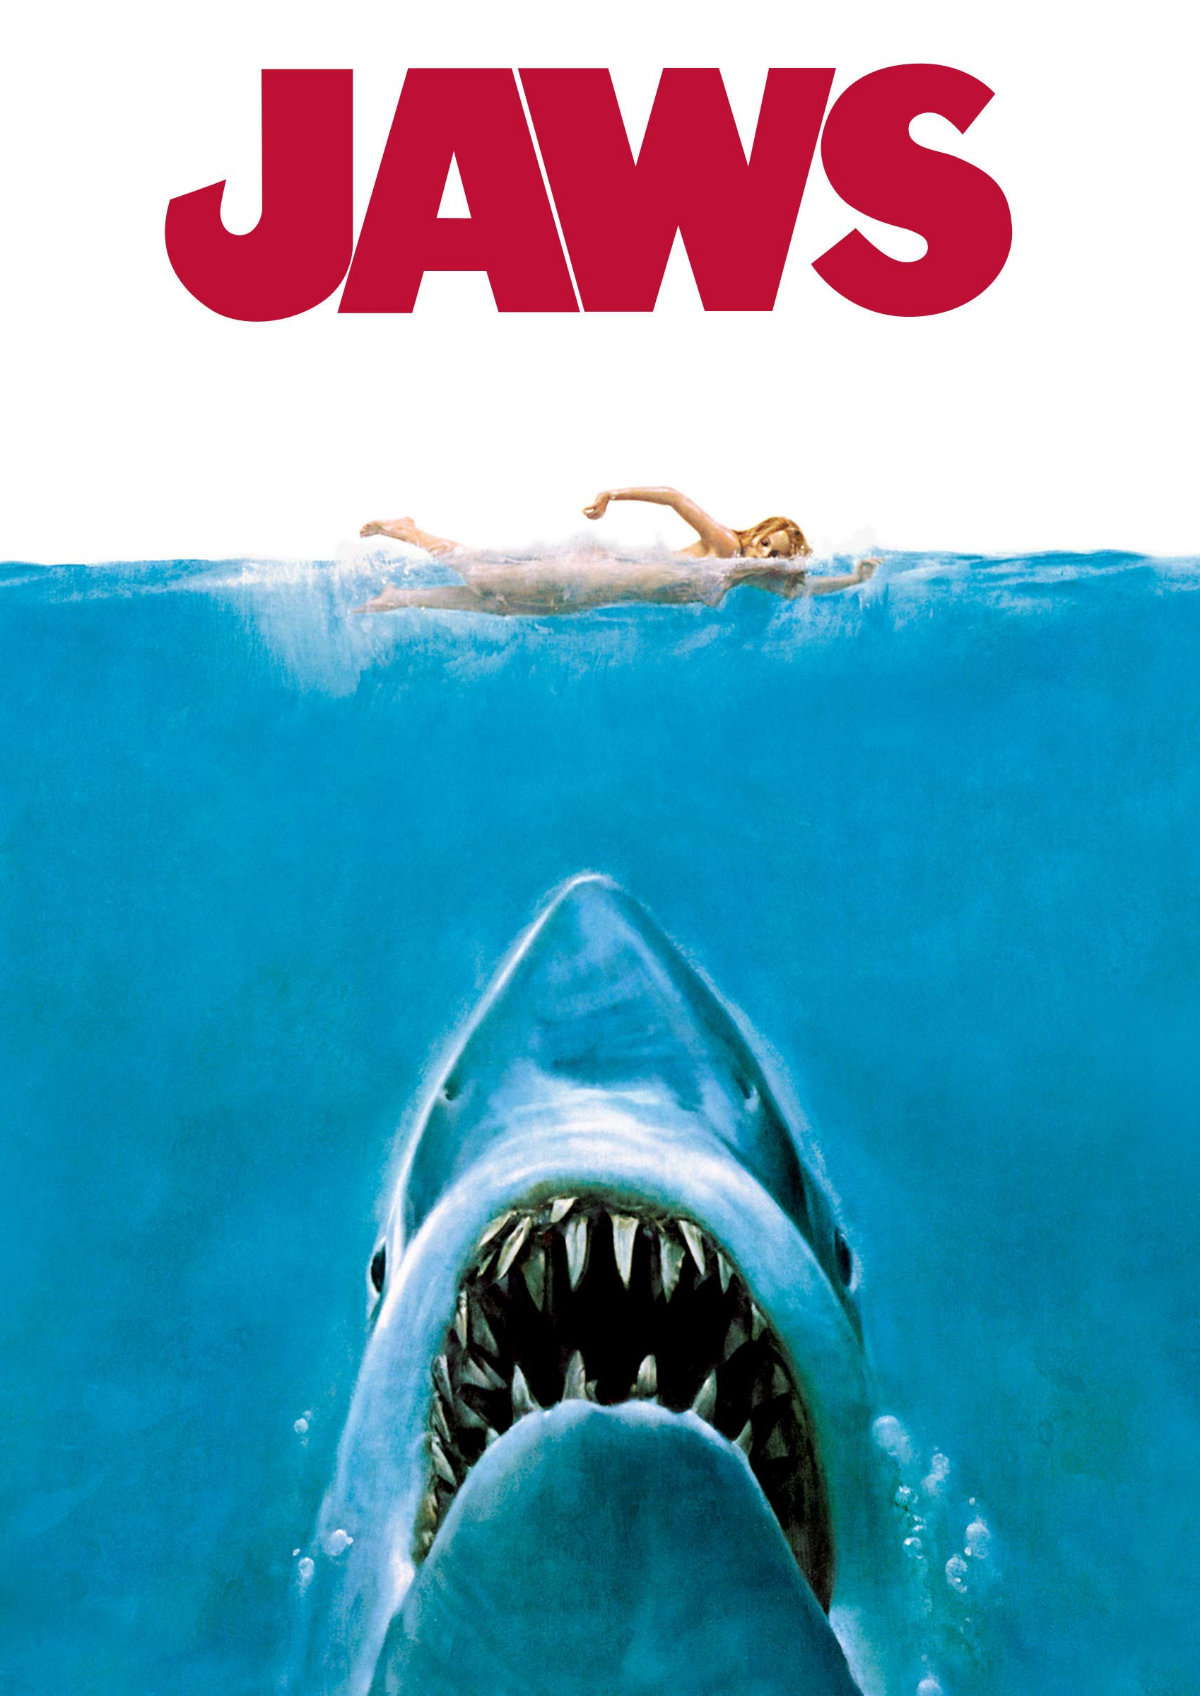 'Jaws' movie poster